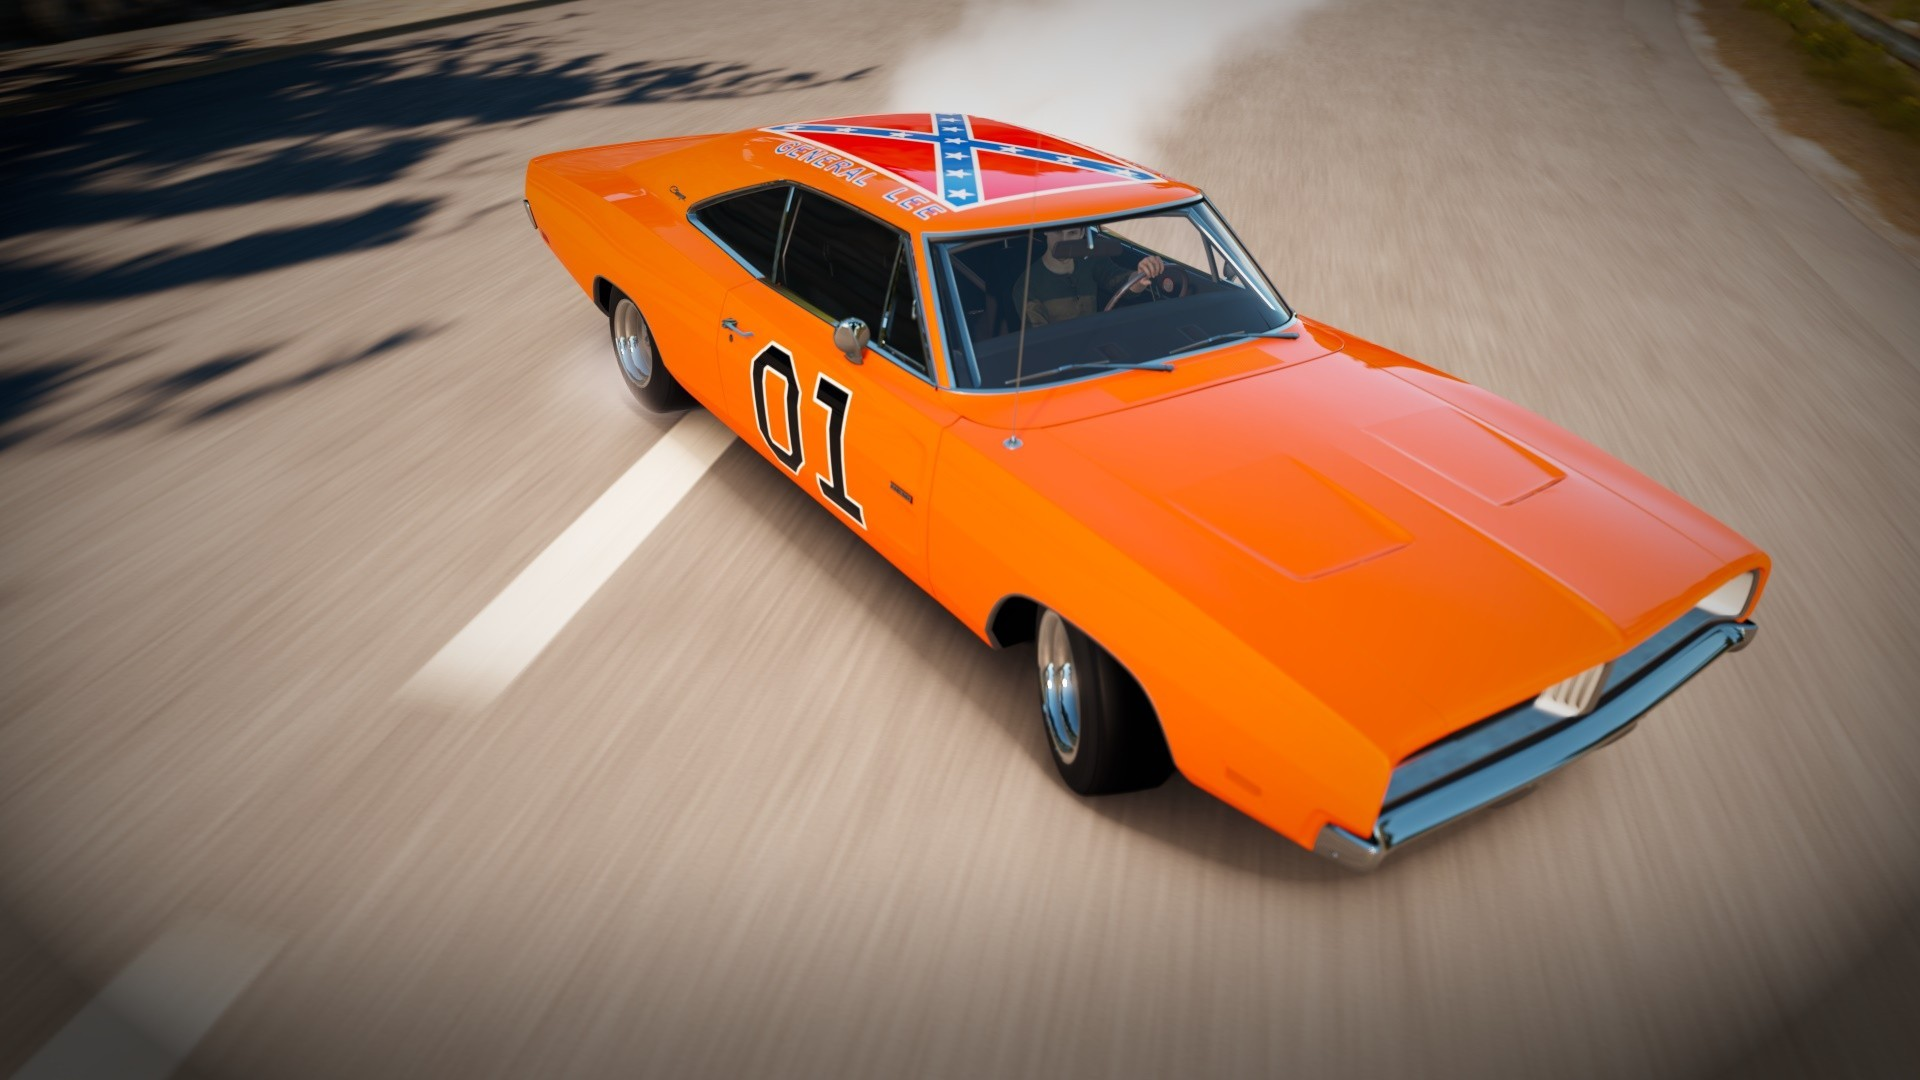 1920x1080 Forza Horizon 2, Forza Horizon, Forza Motorsport, Charger RT, Dodge Charger  R T